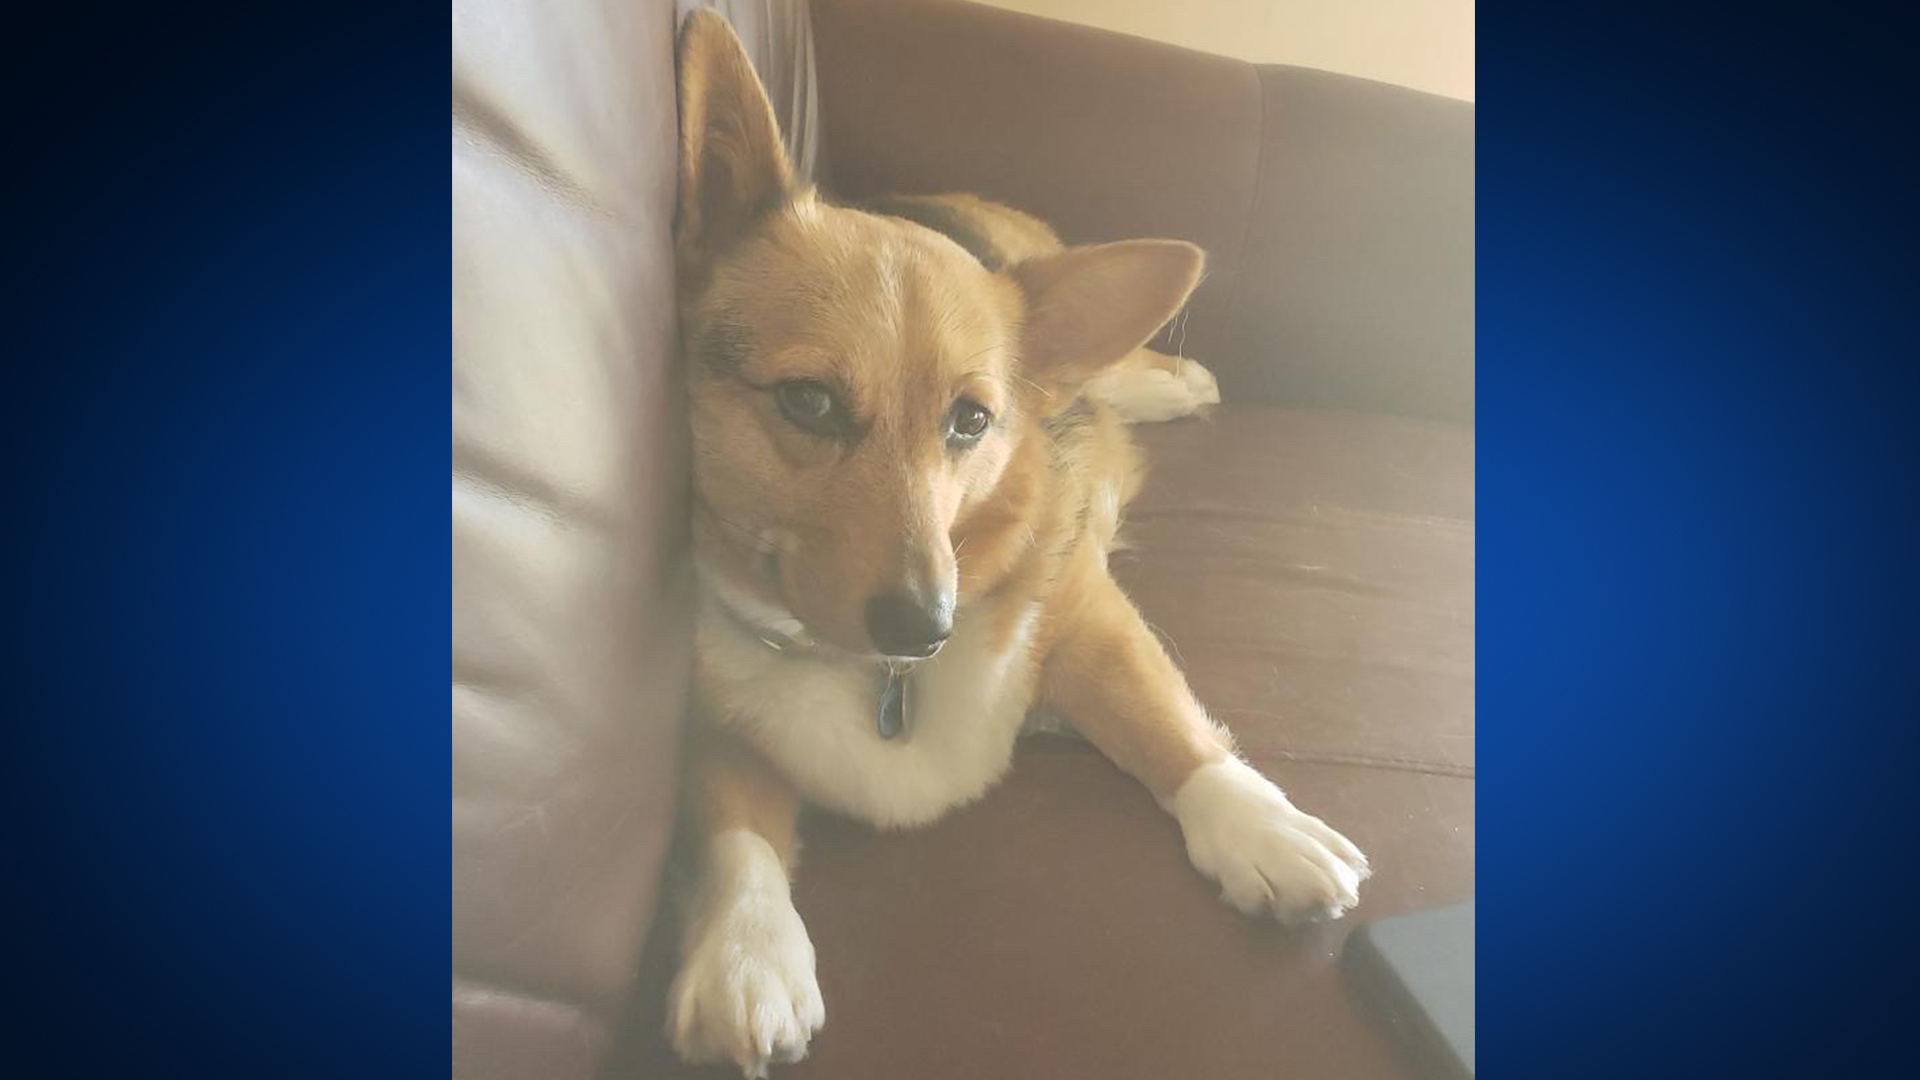 Sadie the dog is OK after a stranger entered her home and threw her over the couch (Viewer Photo)